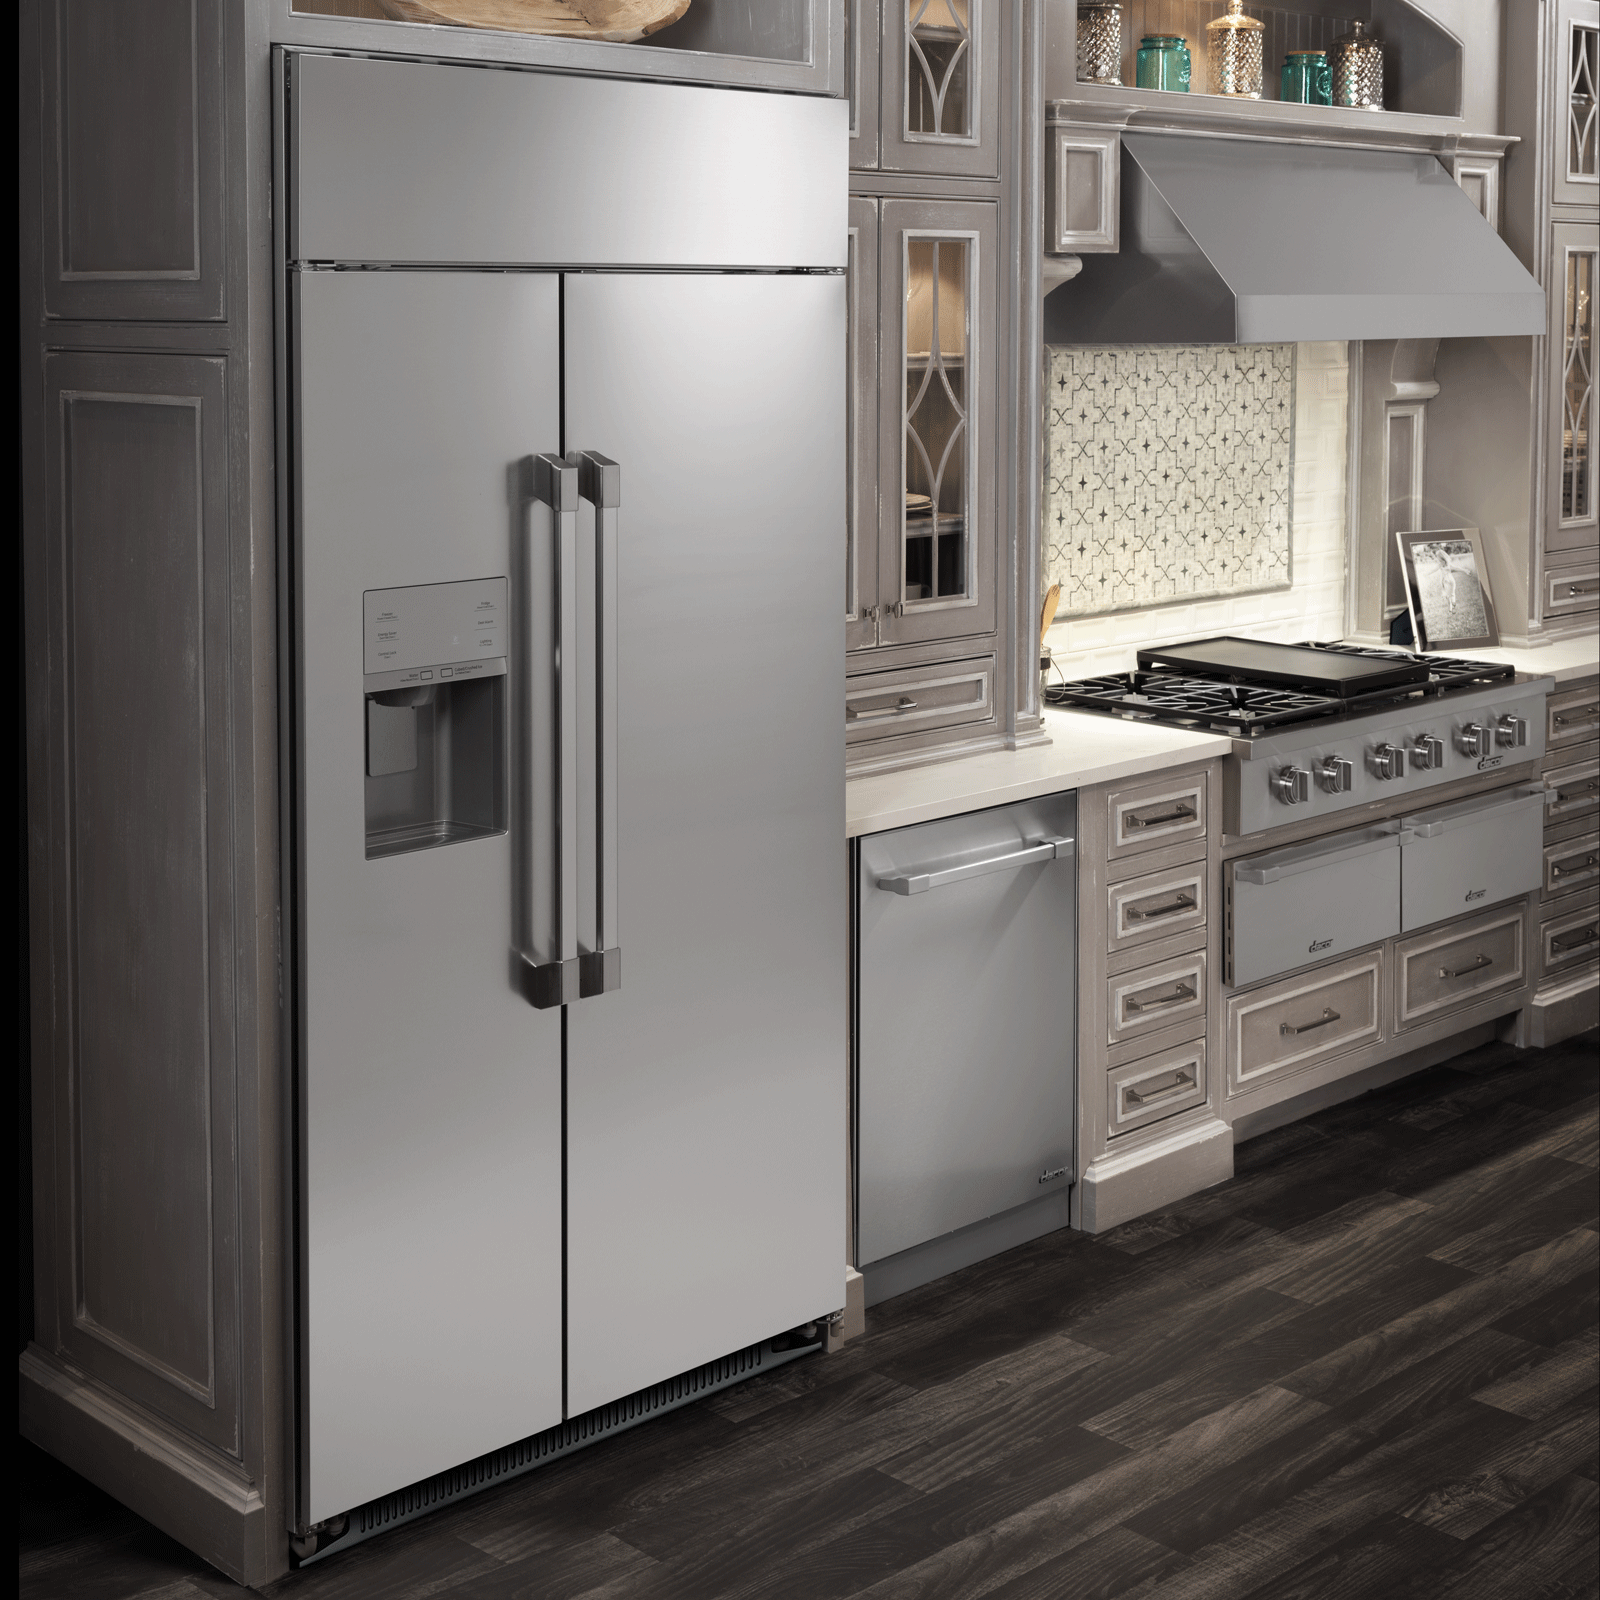 "Model: DYF42SBIWR | Dacor Professional 42"" Built-In Side-by-Side Refrigerator"